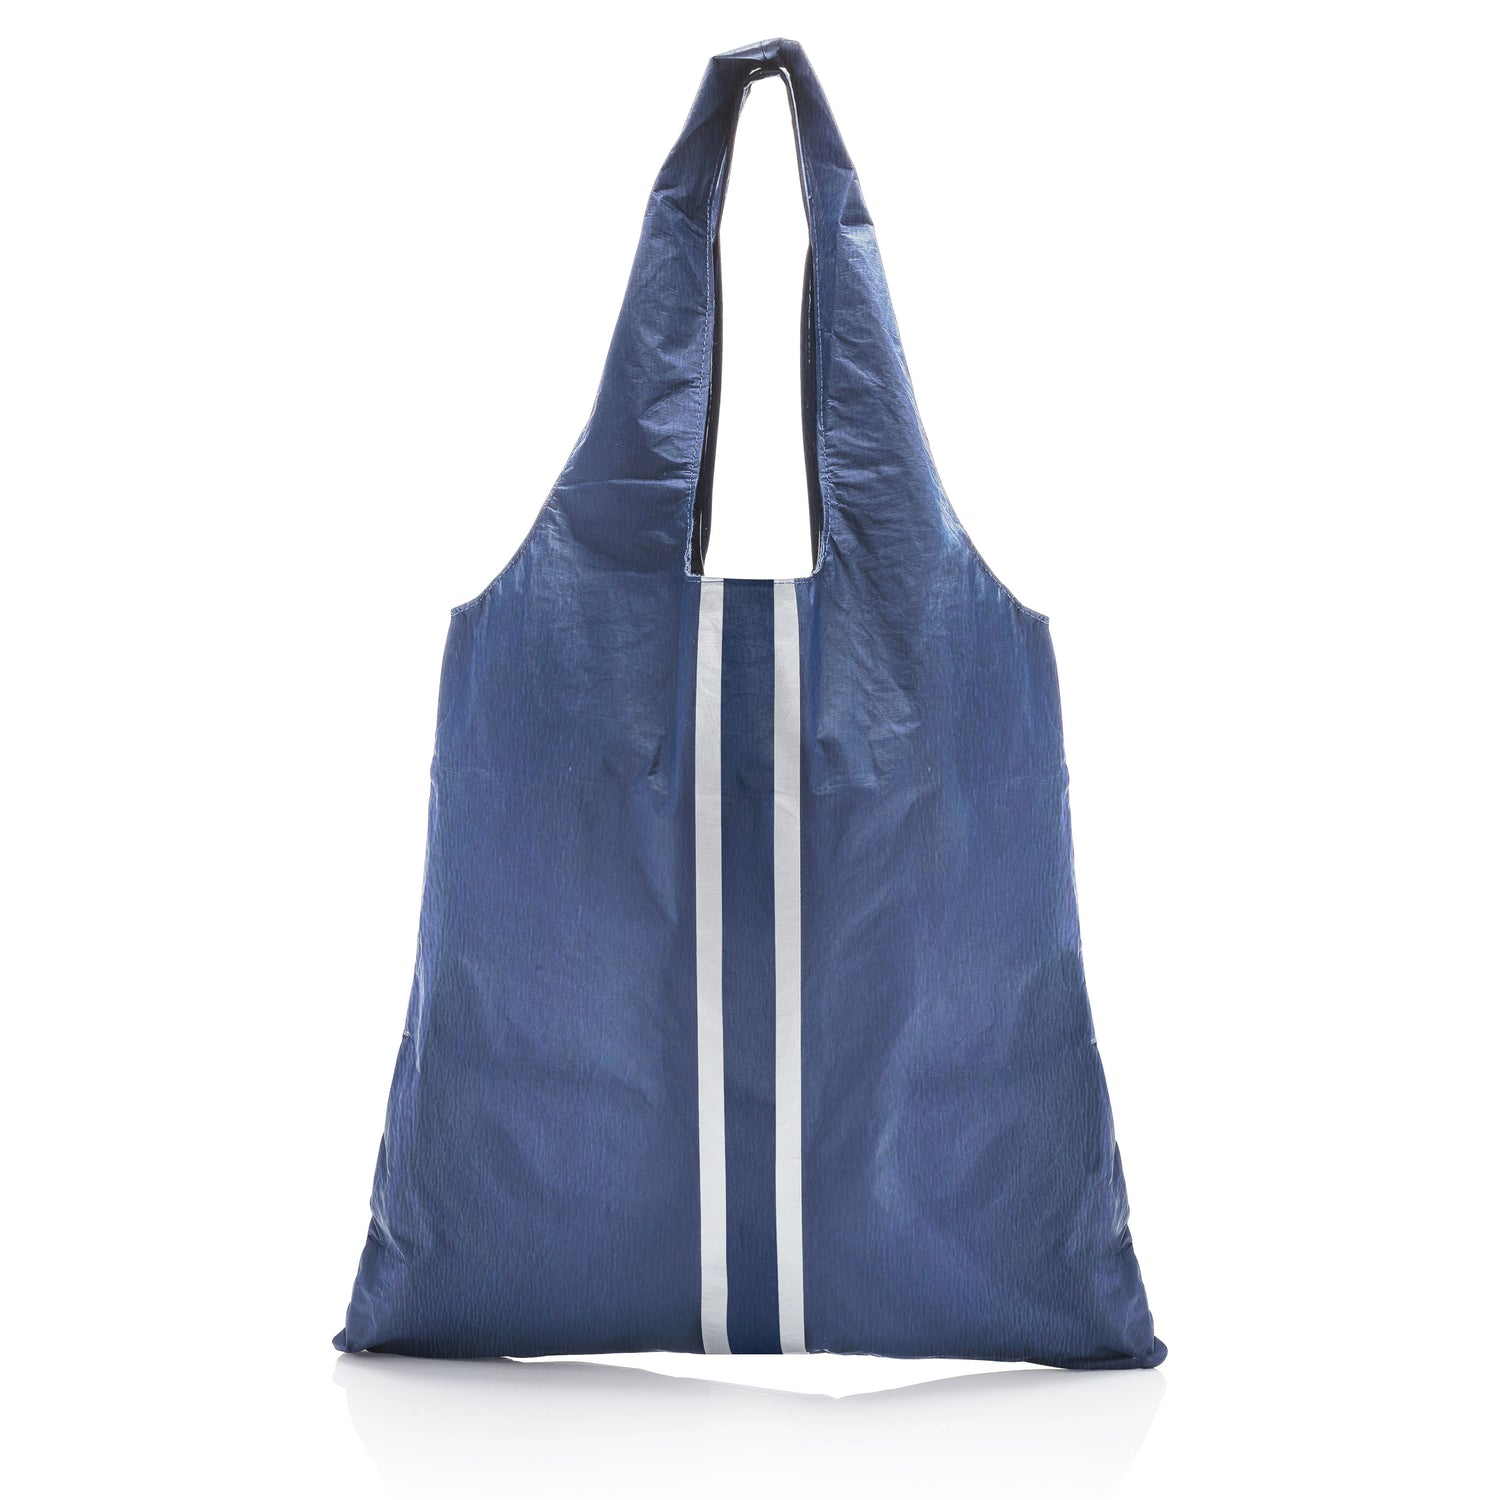 Carryall Tote - Shimmer Navy HLT Collection with Silver Lines